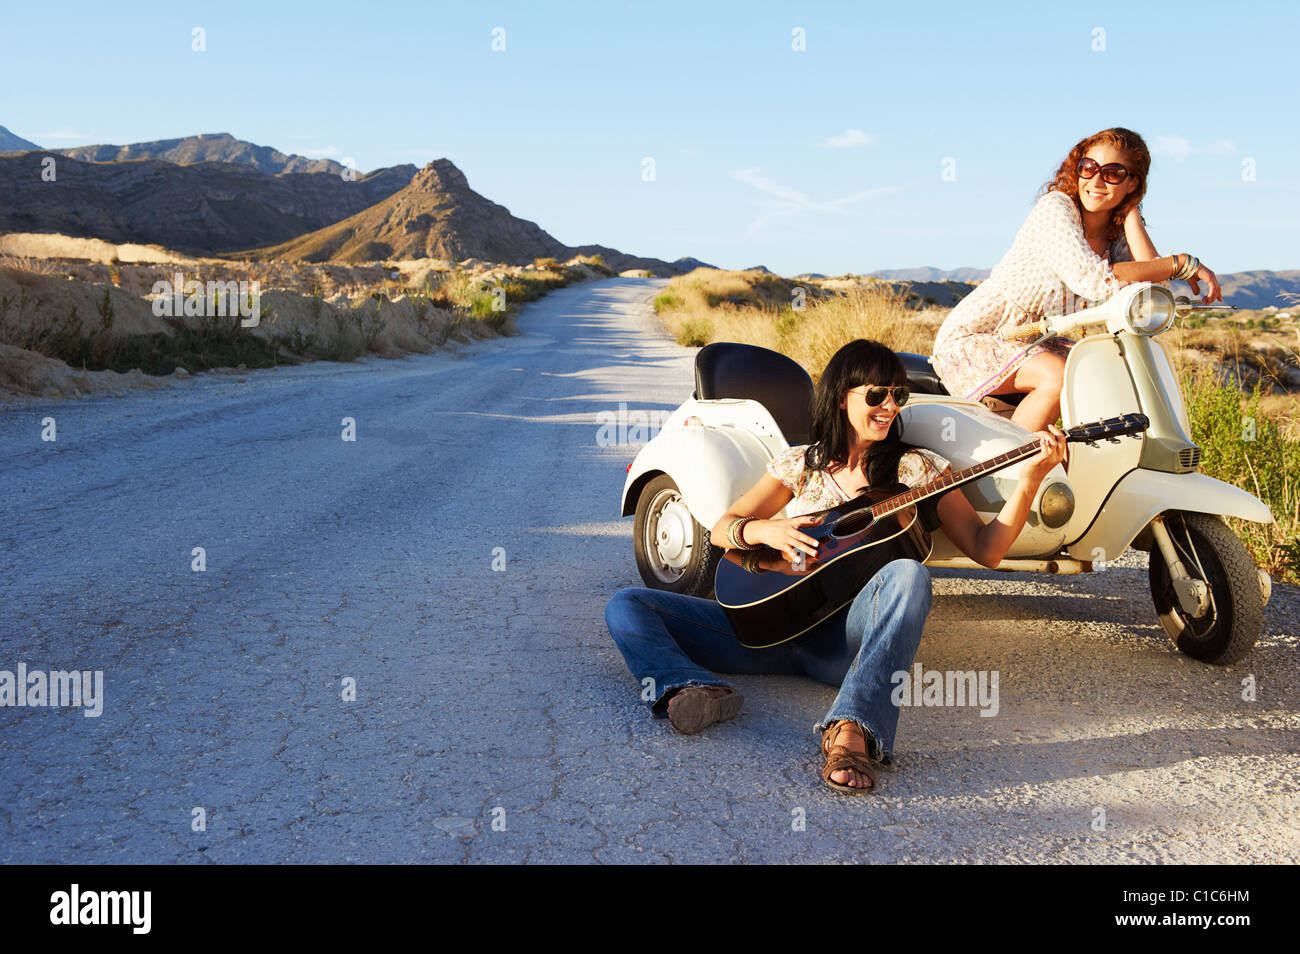 Women resting by road with motorbike - Stock Image